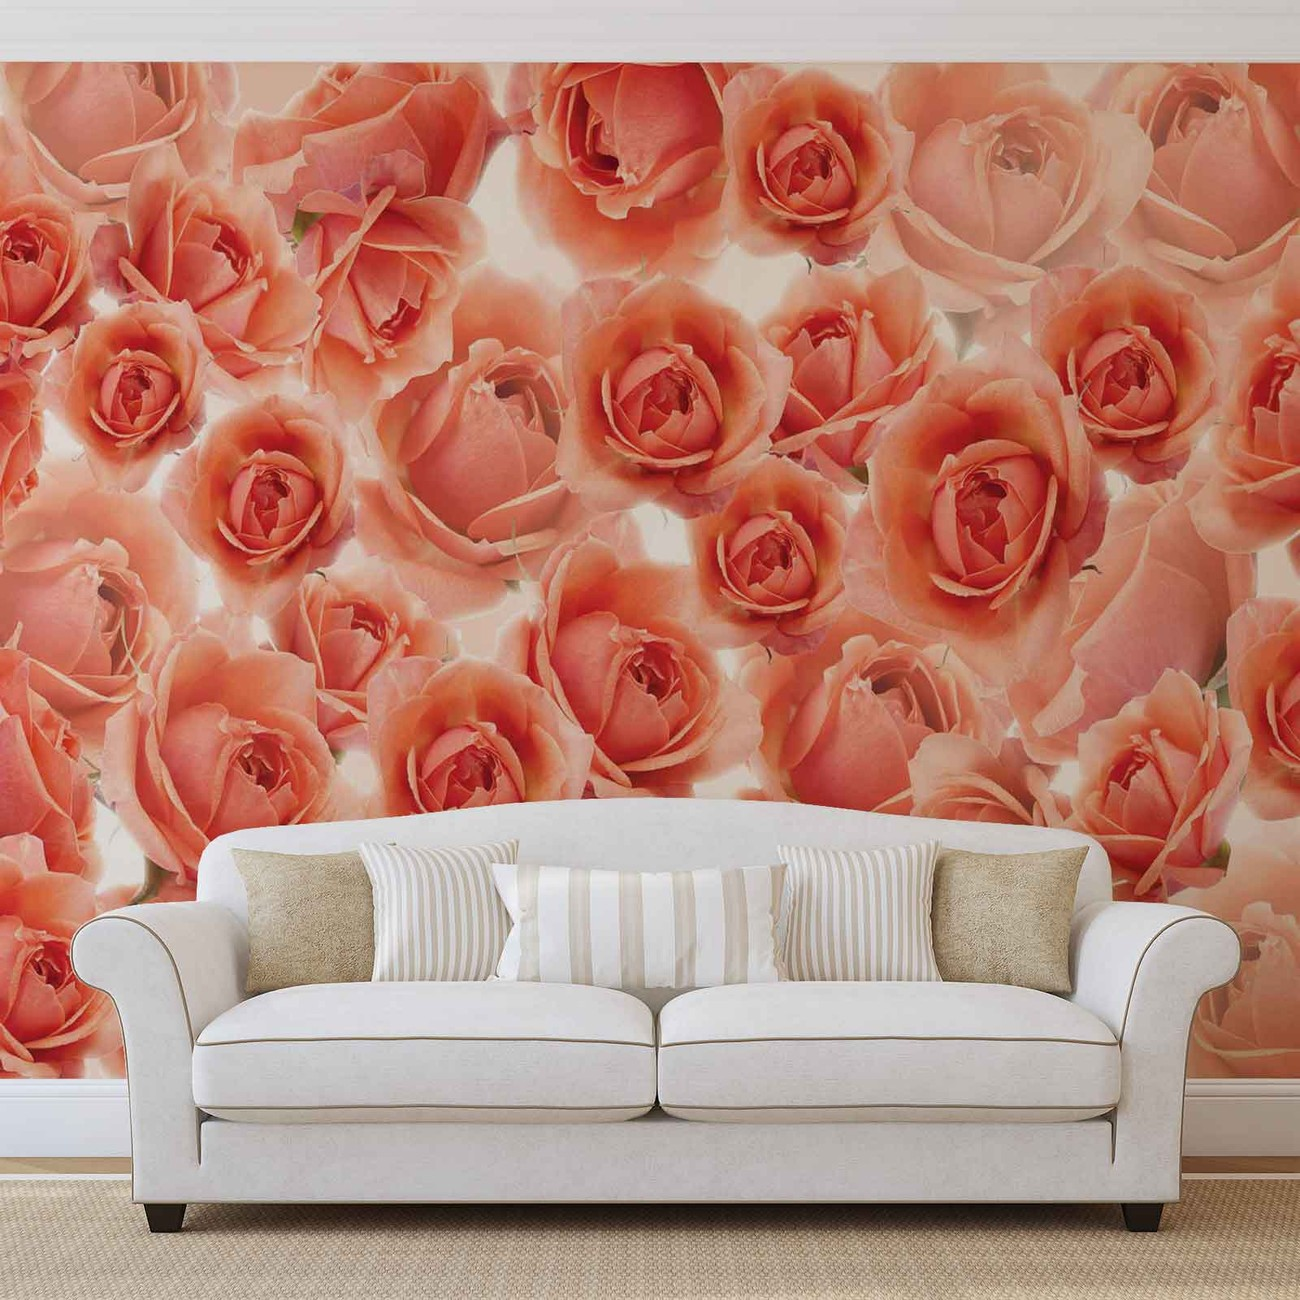 fleurs roses rouges poster mural papier peint acheter. Black Bedroom Furniture Sets. Home Design Ideas